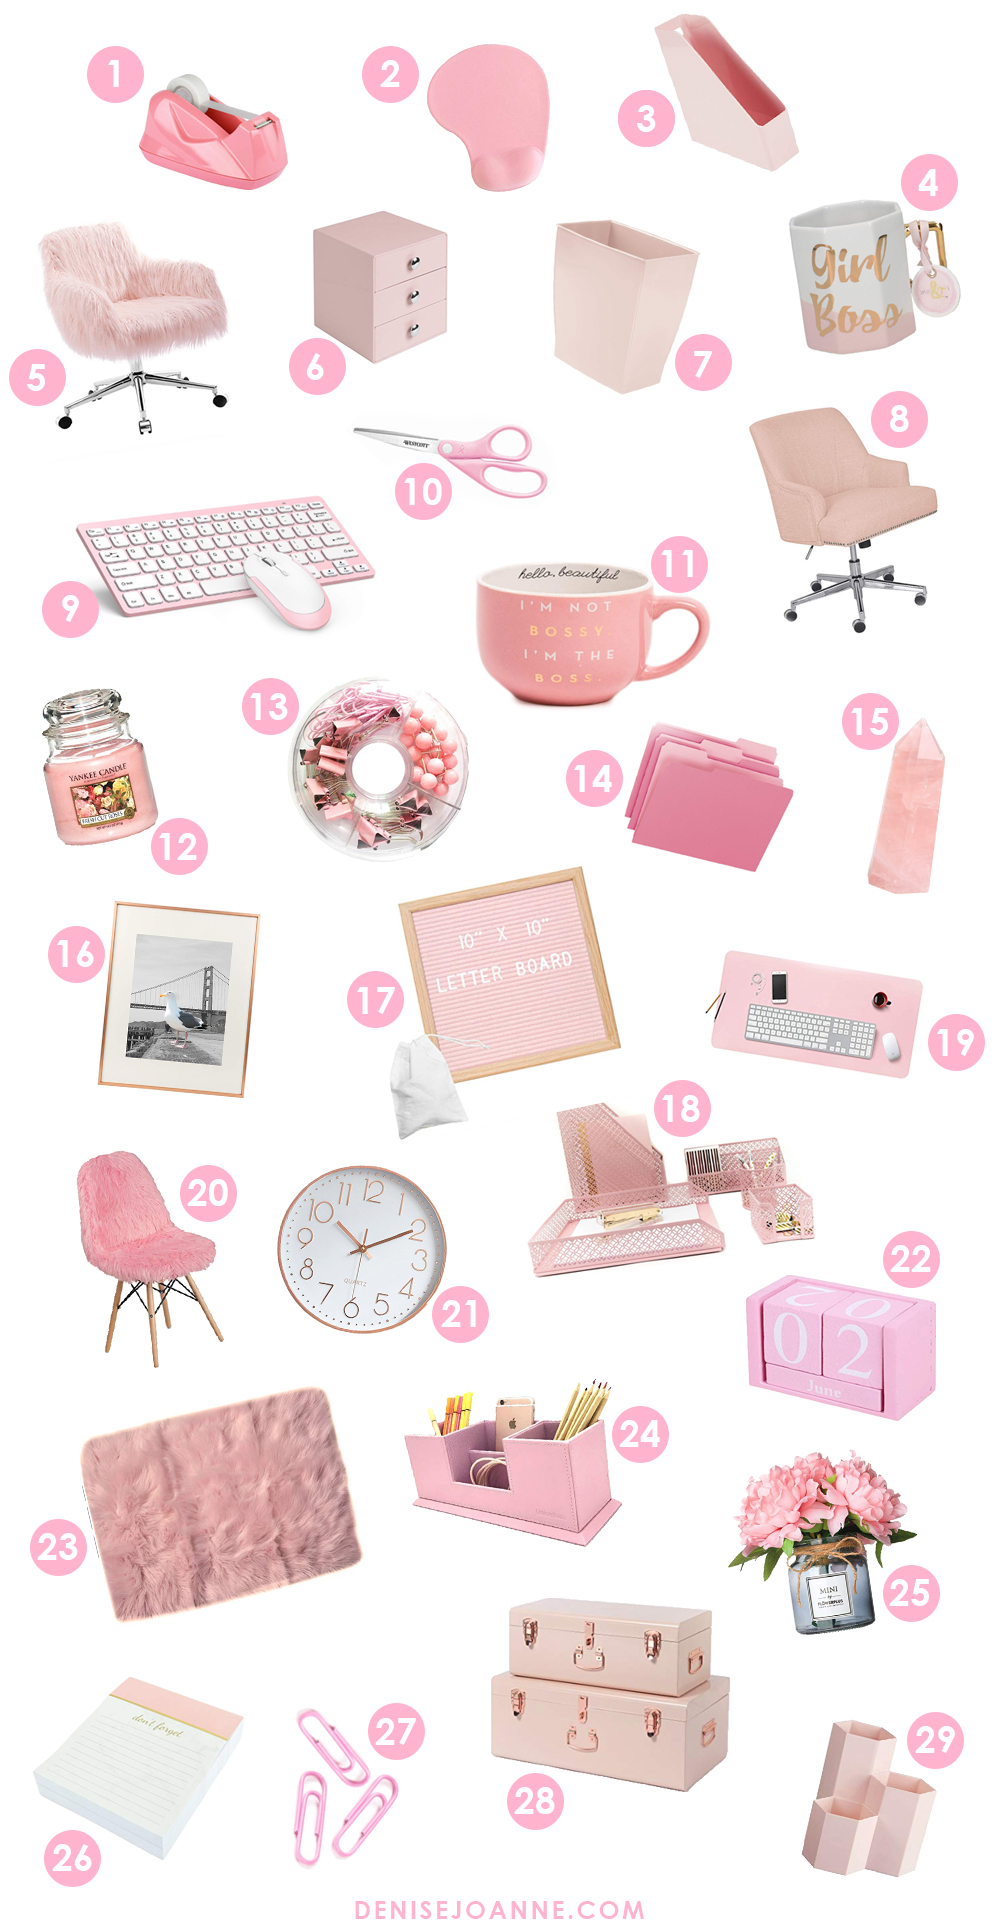 29 Cute pink items for a girl boss office